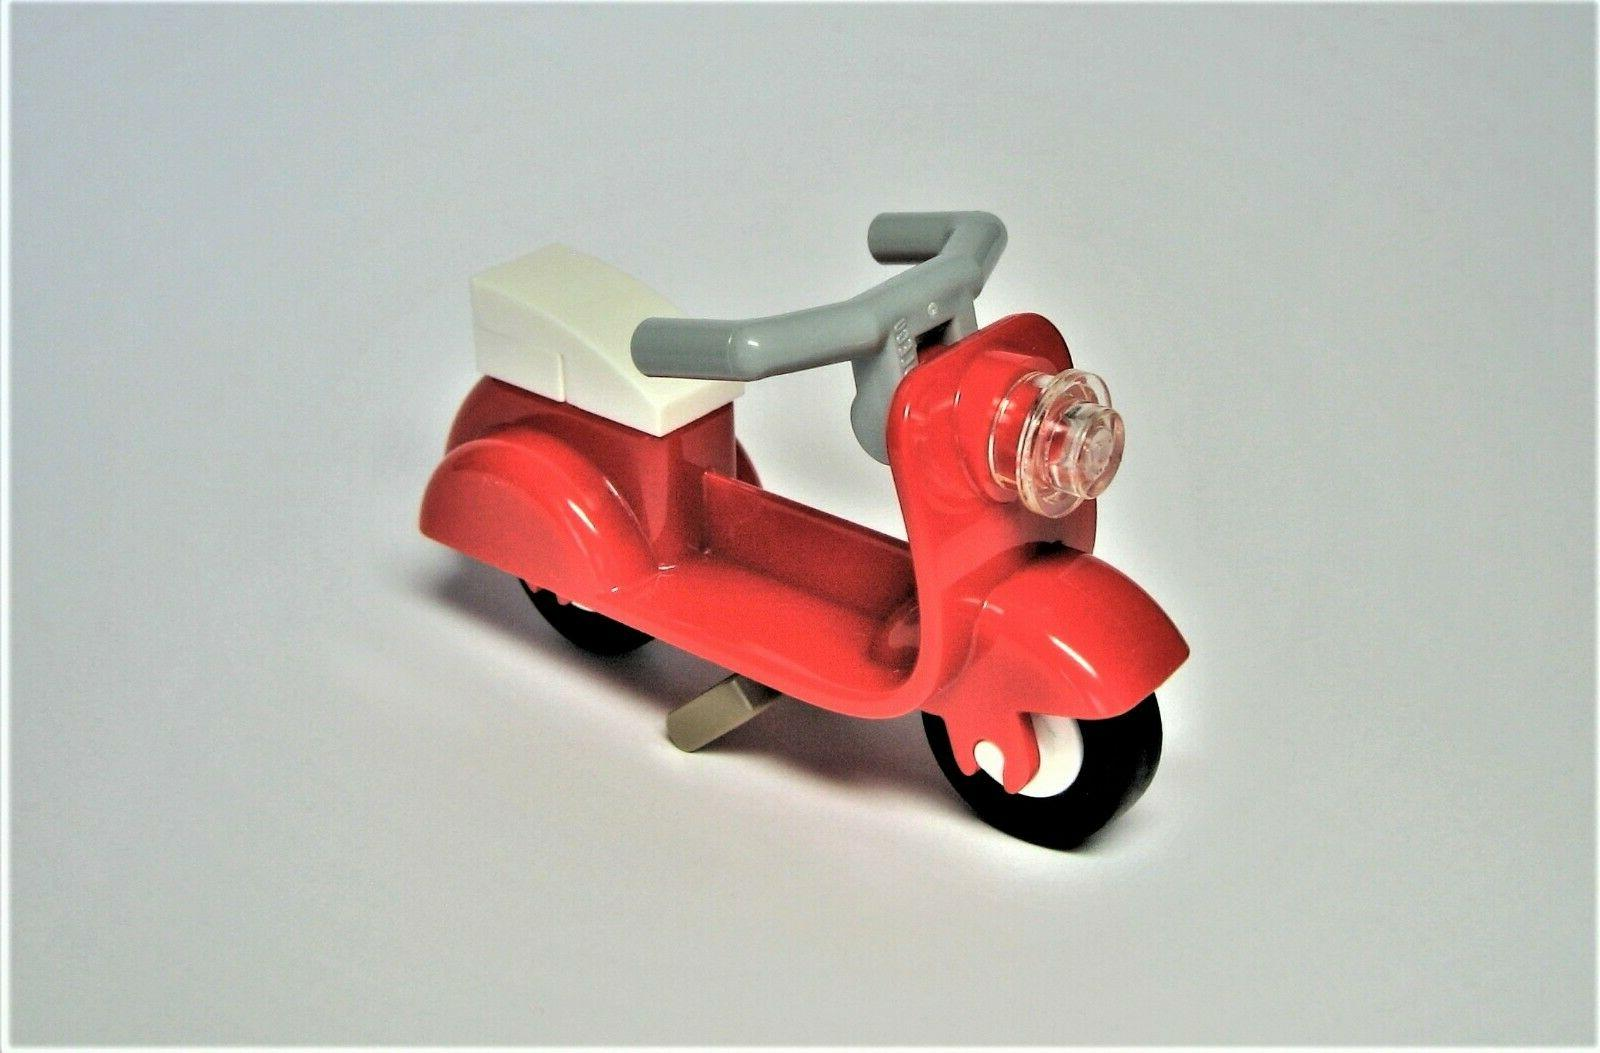 adorable new friends minifigure mini doll scooter